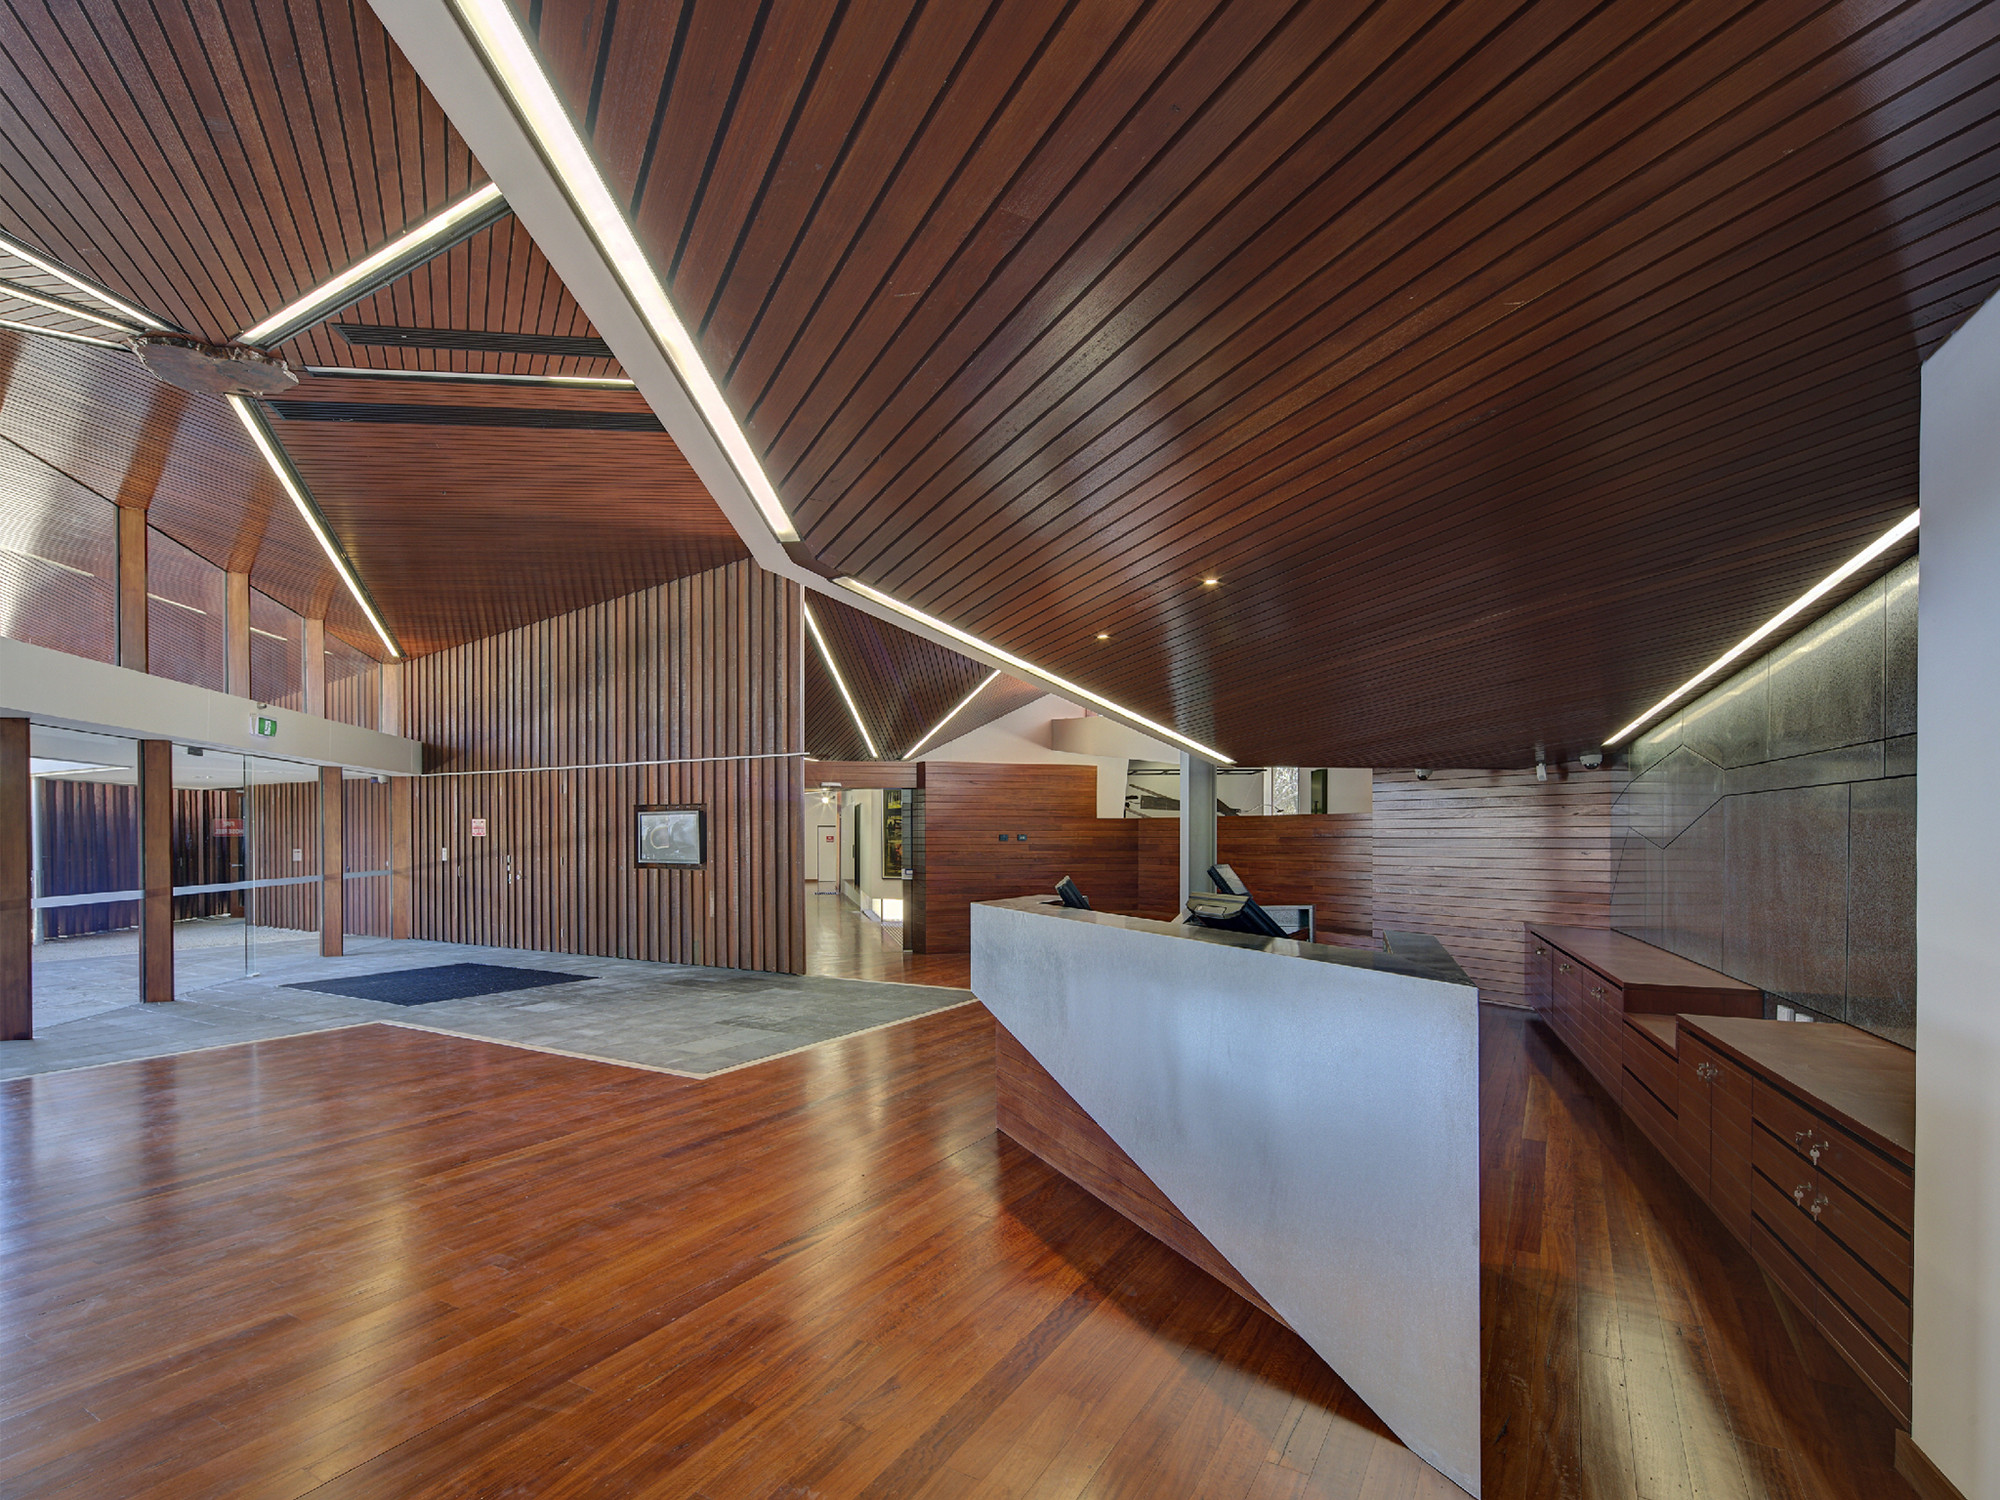 Port Of Echuca Discovery Centre / JAWSARCHITECTS, Courtesy of JAWSARCHITECTS